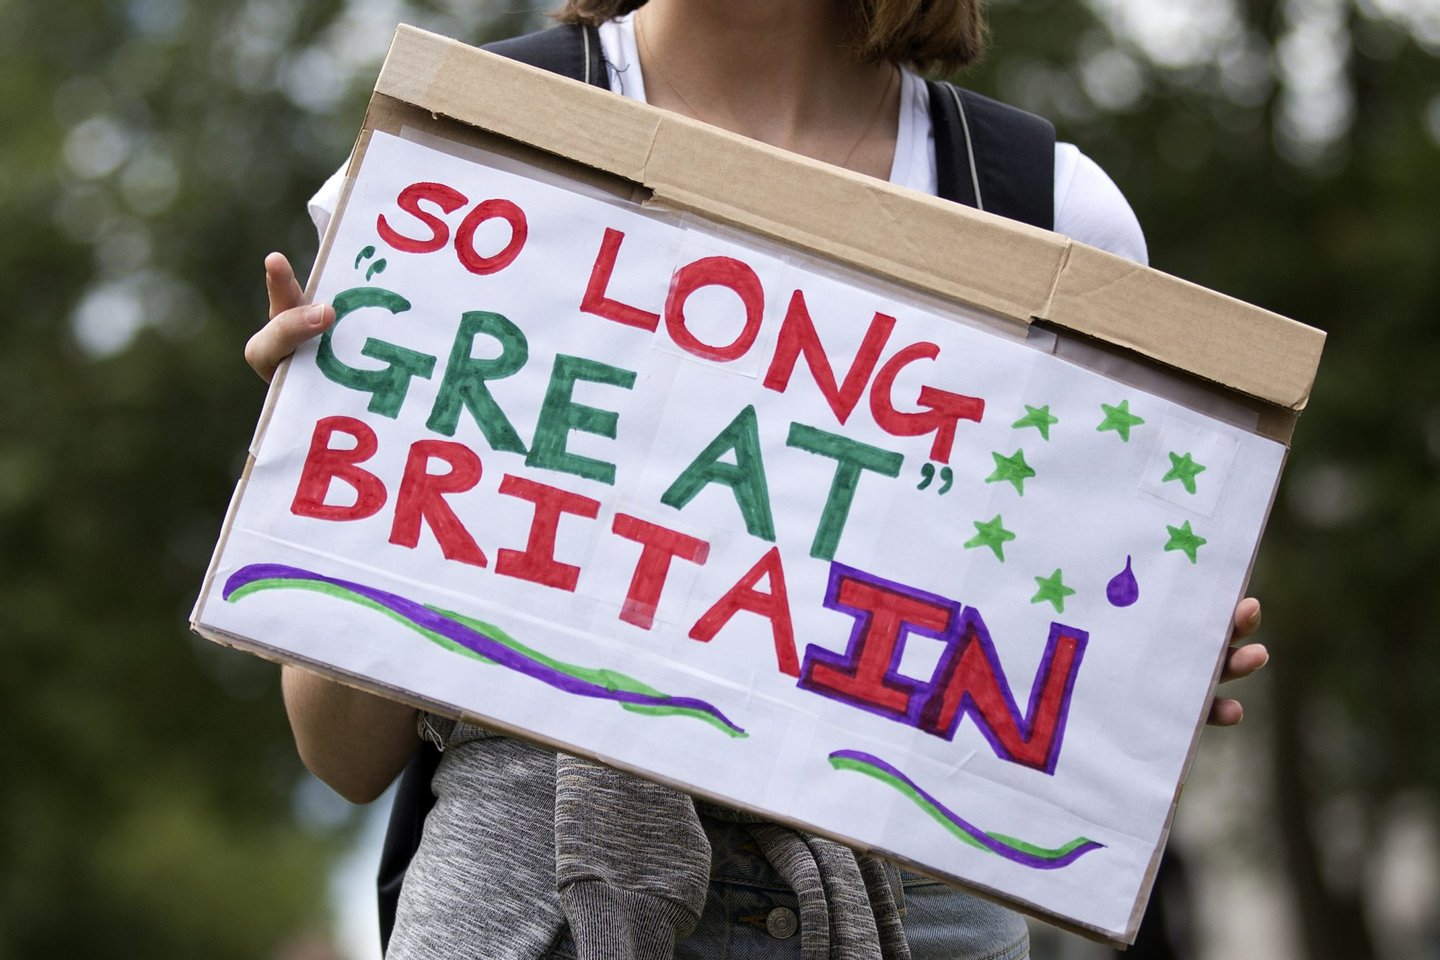 "A demonstrator holds a placard that reads ""So Long Great Britain"" during a protest against the pro-Brexit outcome of the UK's June 23 referendum on the European Union (EU), in central London on June 25, 2016. The result of Britain's June 23 referendum vote to leave the European Union (EU) has pitted parents against children, cities against rural areas, north against south and university graduates against those with fewer qualifications. London, Scotland and Northern Ireland voted to remain in the EU but Wales and large swathes of England, particularly former industrial hubs in the north with many disaffected workers, backed a Brexit. / AFP / JUSTIN TALLIS (Photo credit should read JUSTIN TALLIS/AFP/Getty Images)"